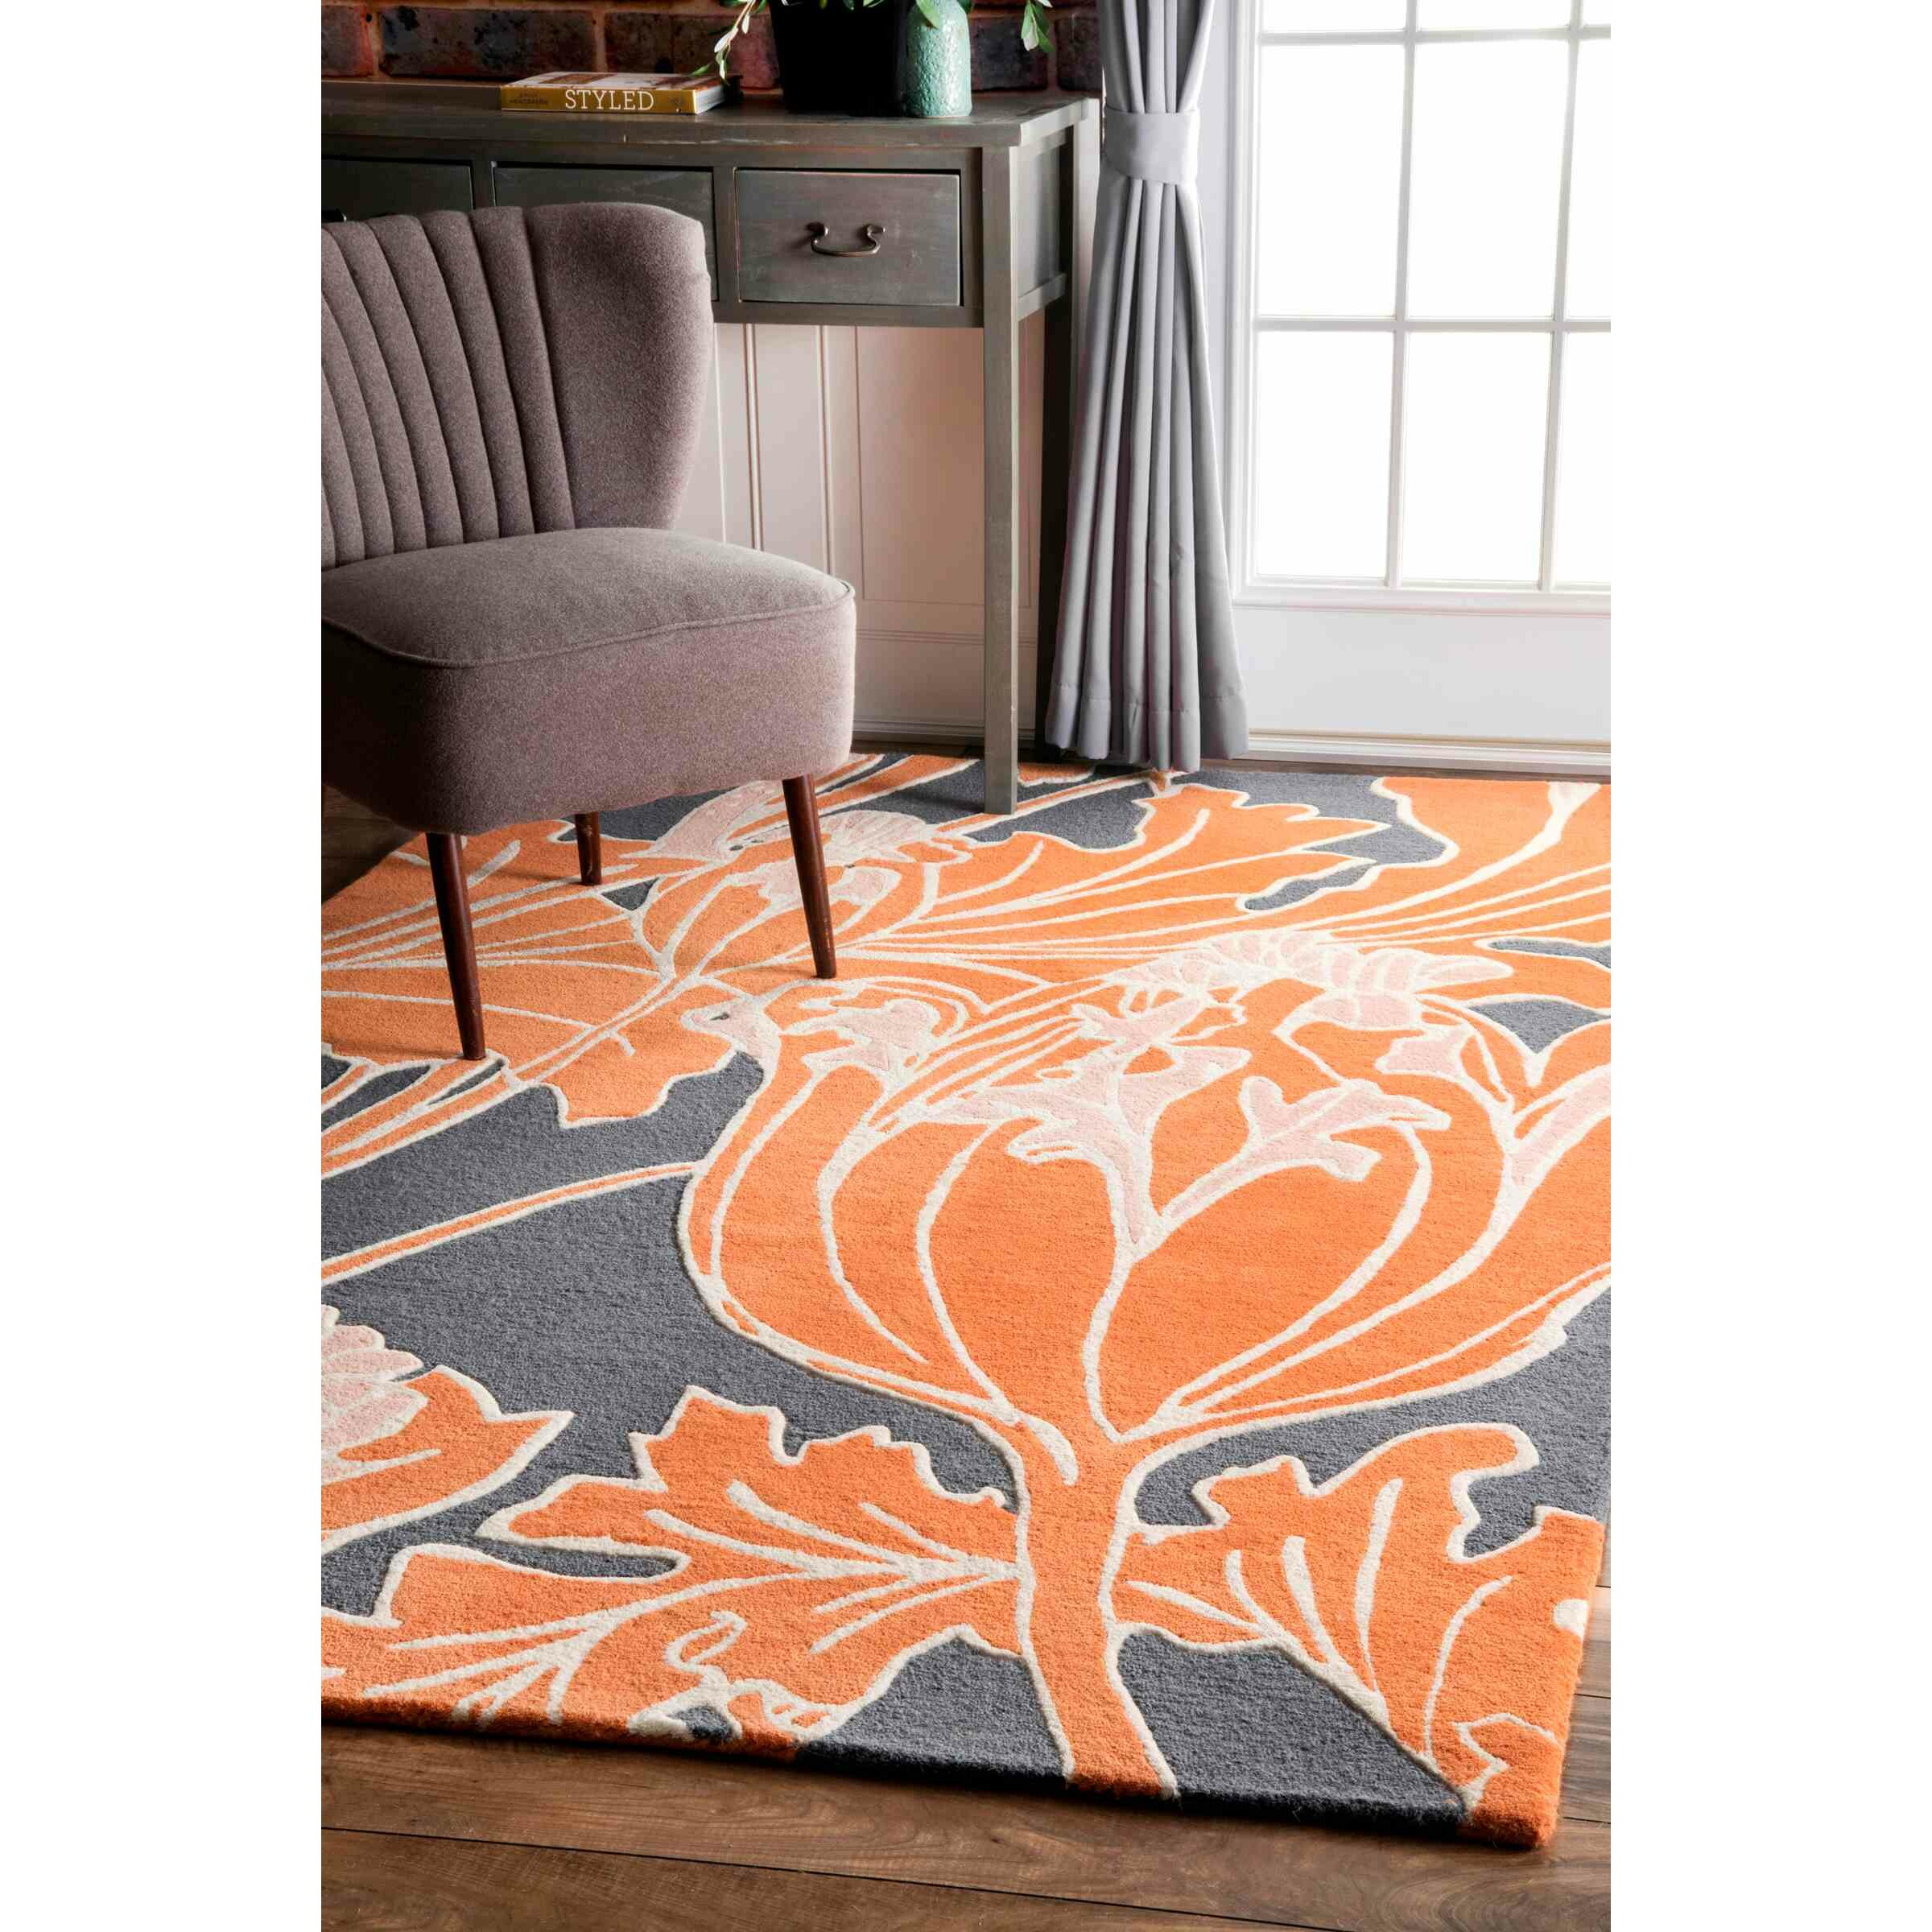 orange and brown area rugs  roselawnlutheran - victory land thomas paul handtufted orangegray area rug